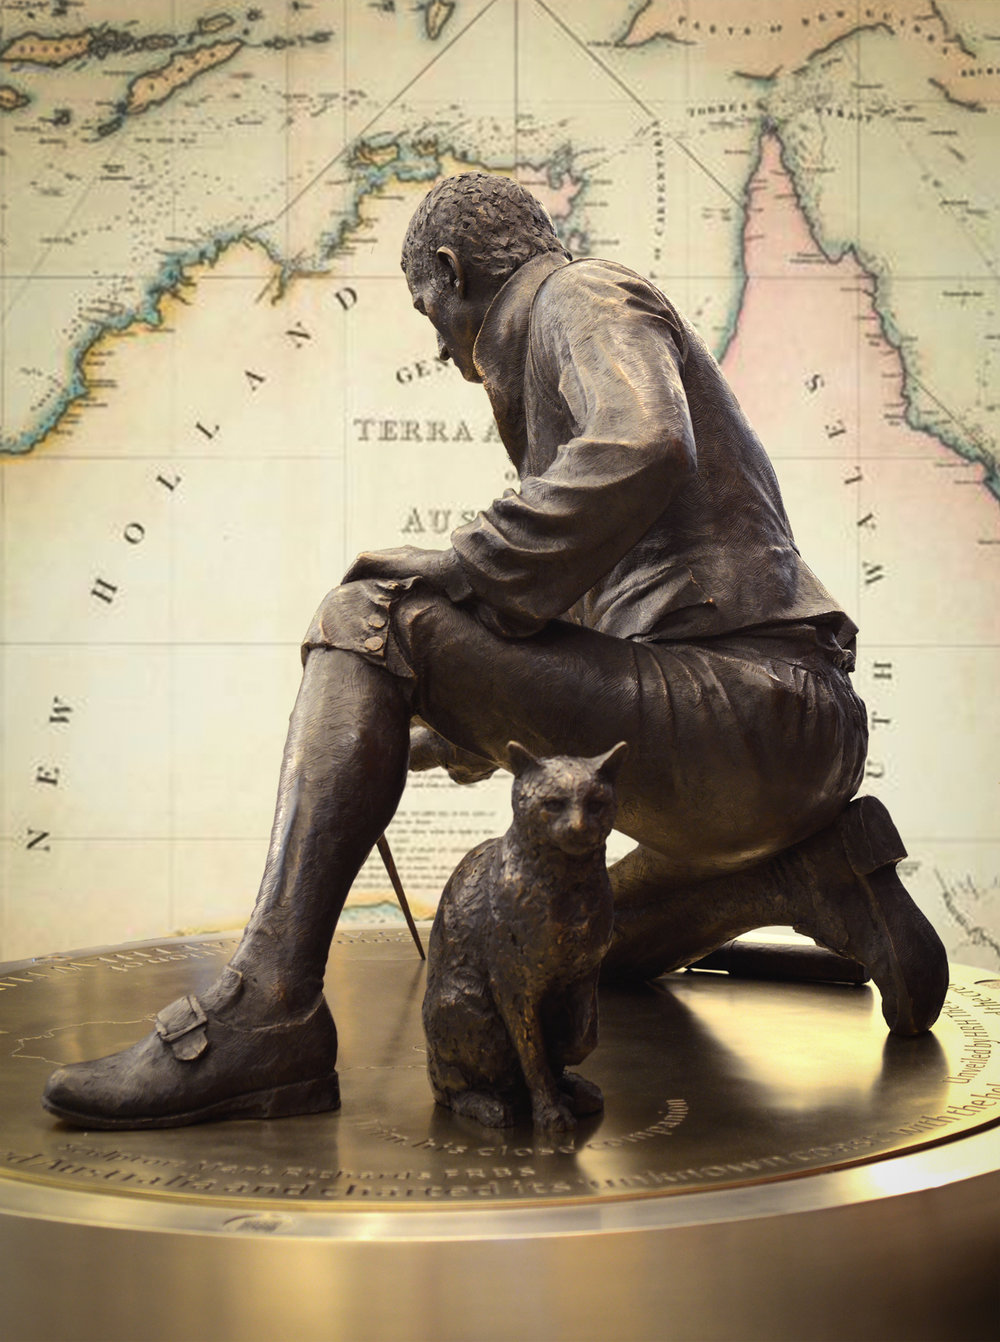 - 'The Steering Committee would like to acknowledge the work of the genius artist who is Mark Richards FRSS. Not only has he sculptured an extraordinarily beautiful statue on time and within budget but he has been an absolute delight to work with. Utterly flawless!'The Matthew Flinders memorial statue committee.